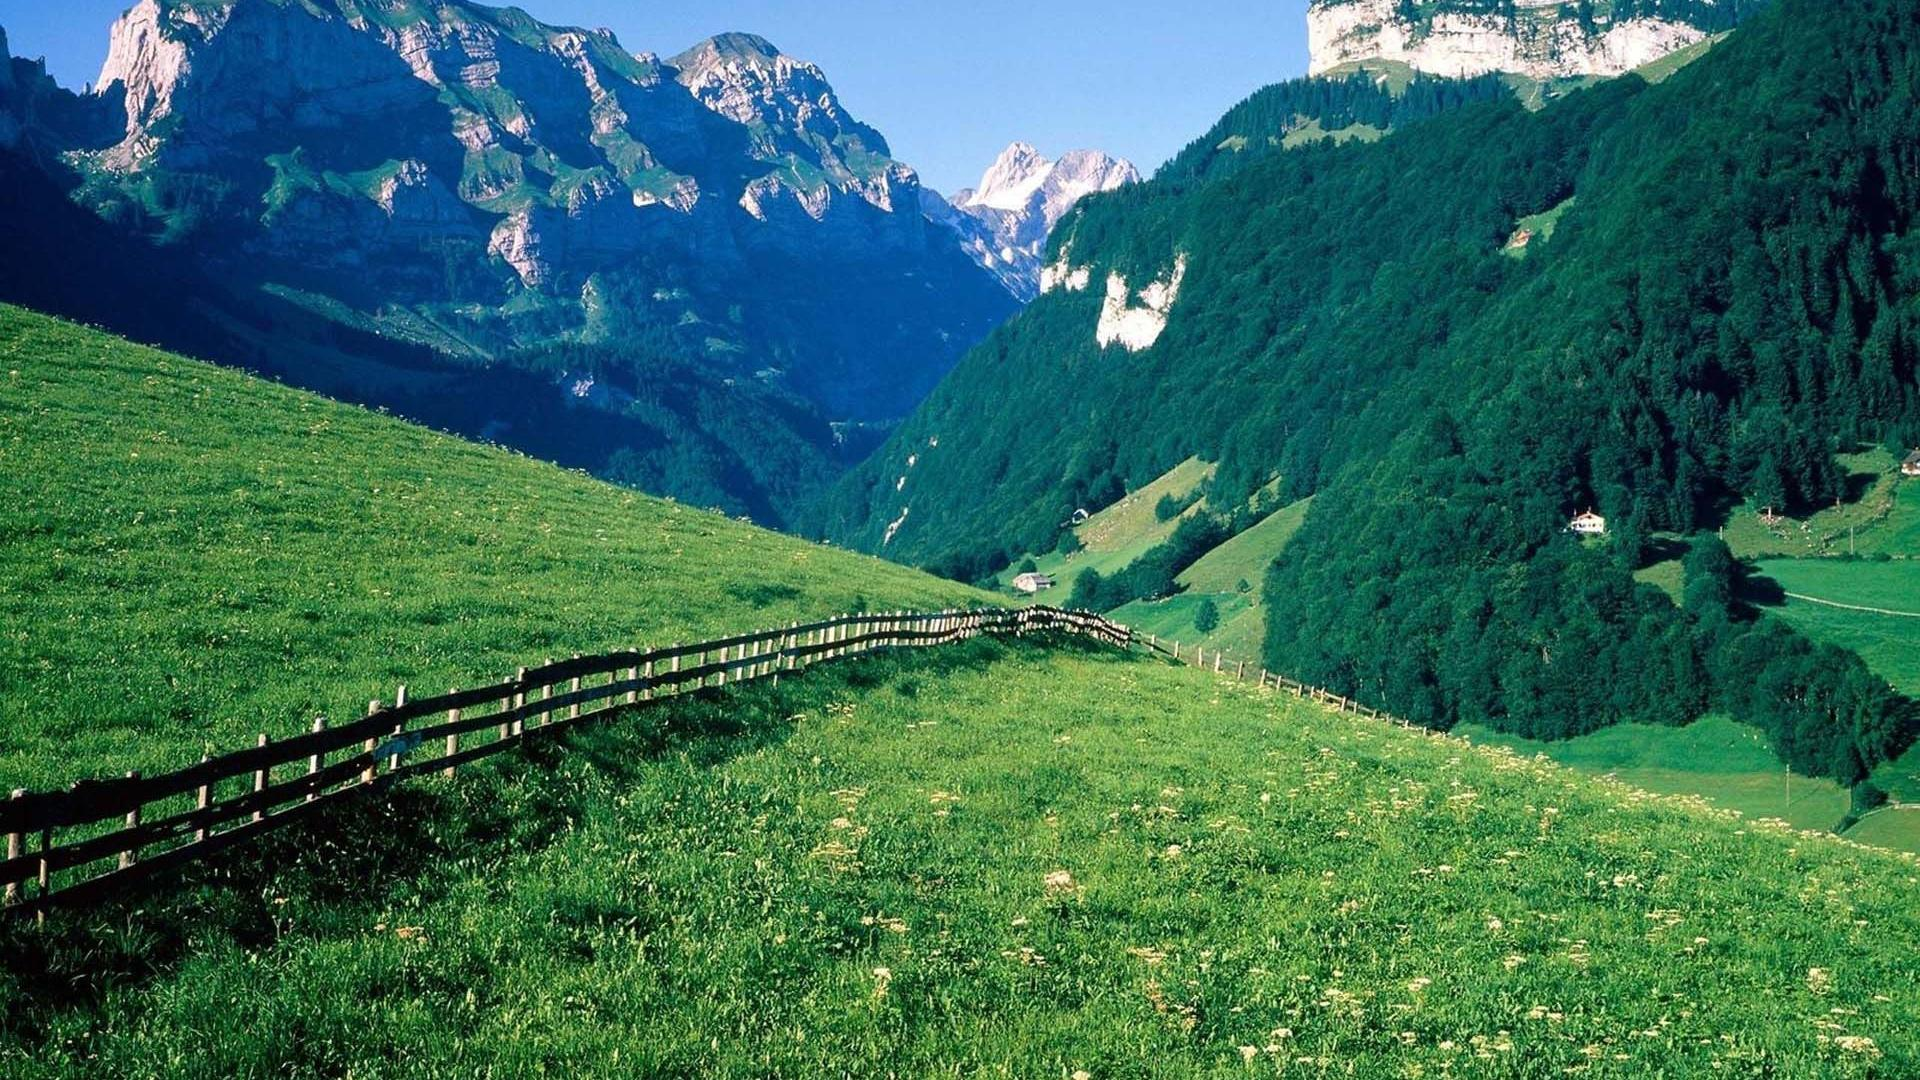 Hd Wonderful Swiss Alps Meadow Wallpaper Download Free